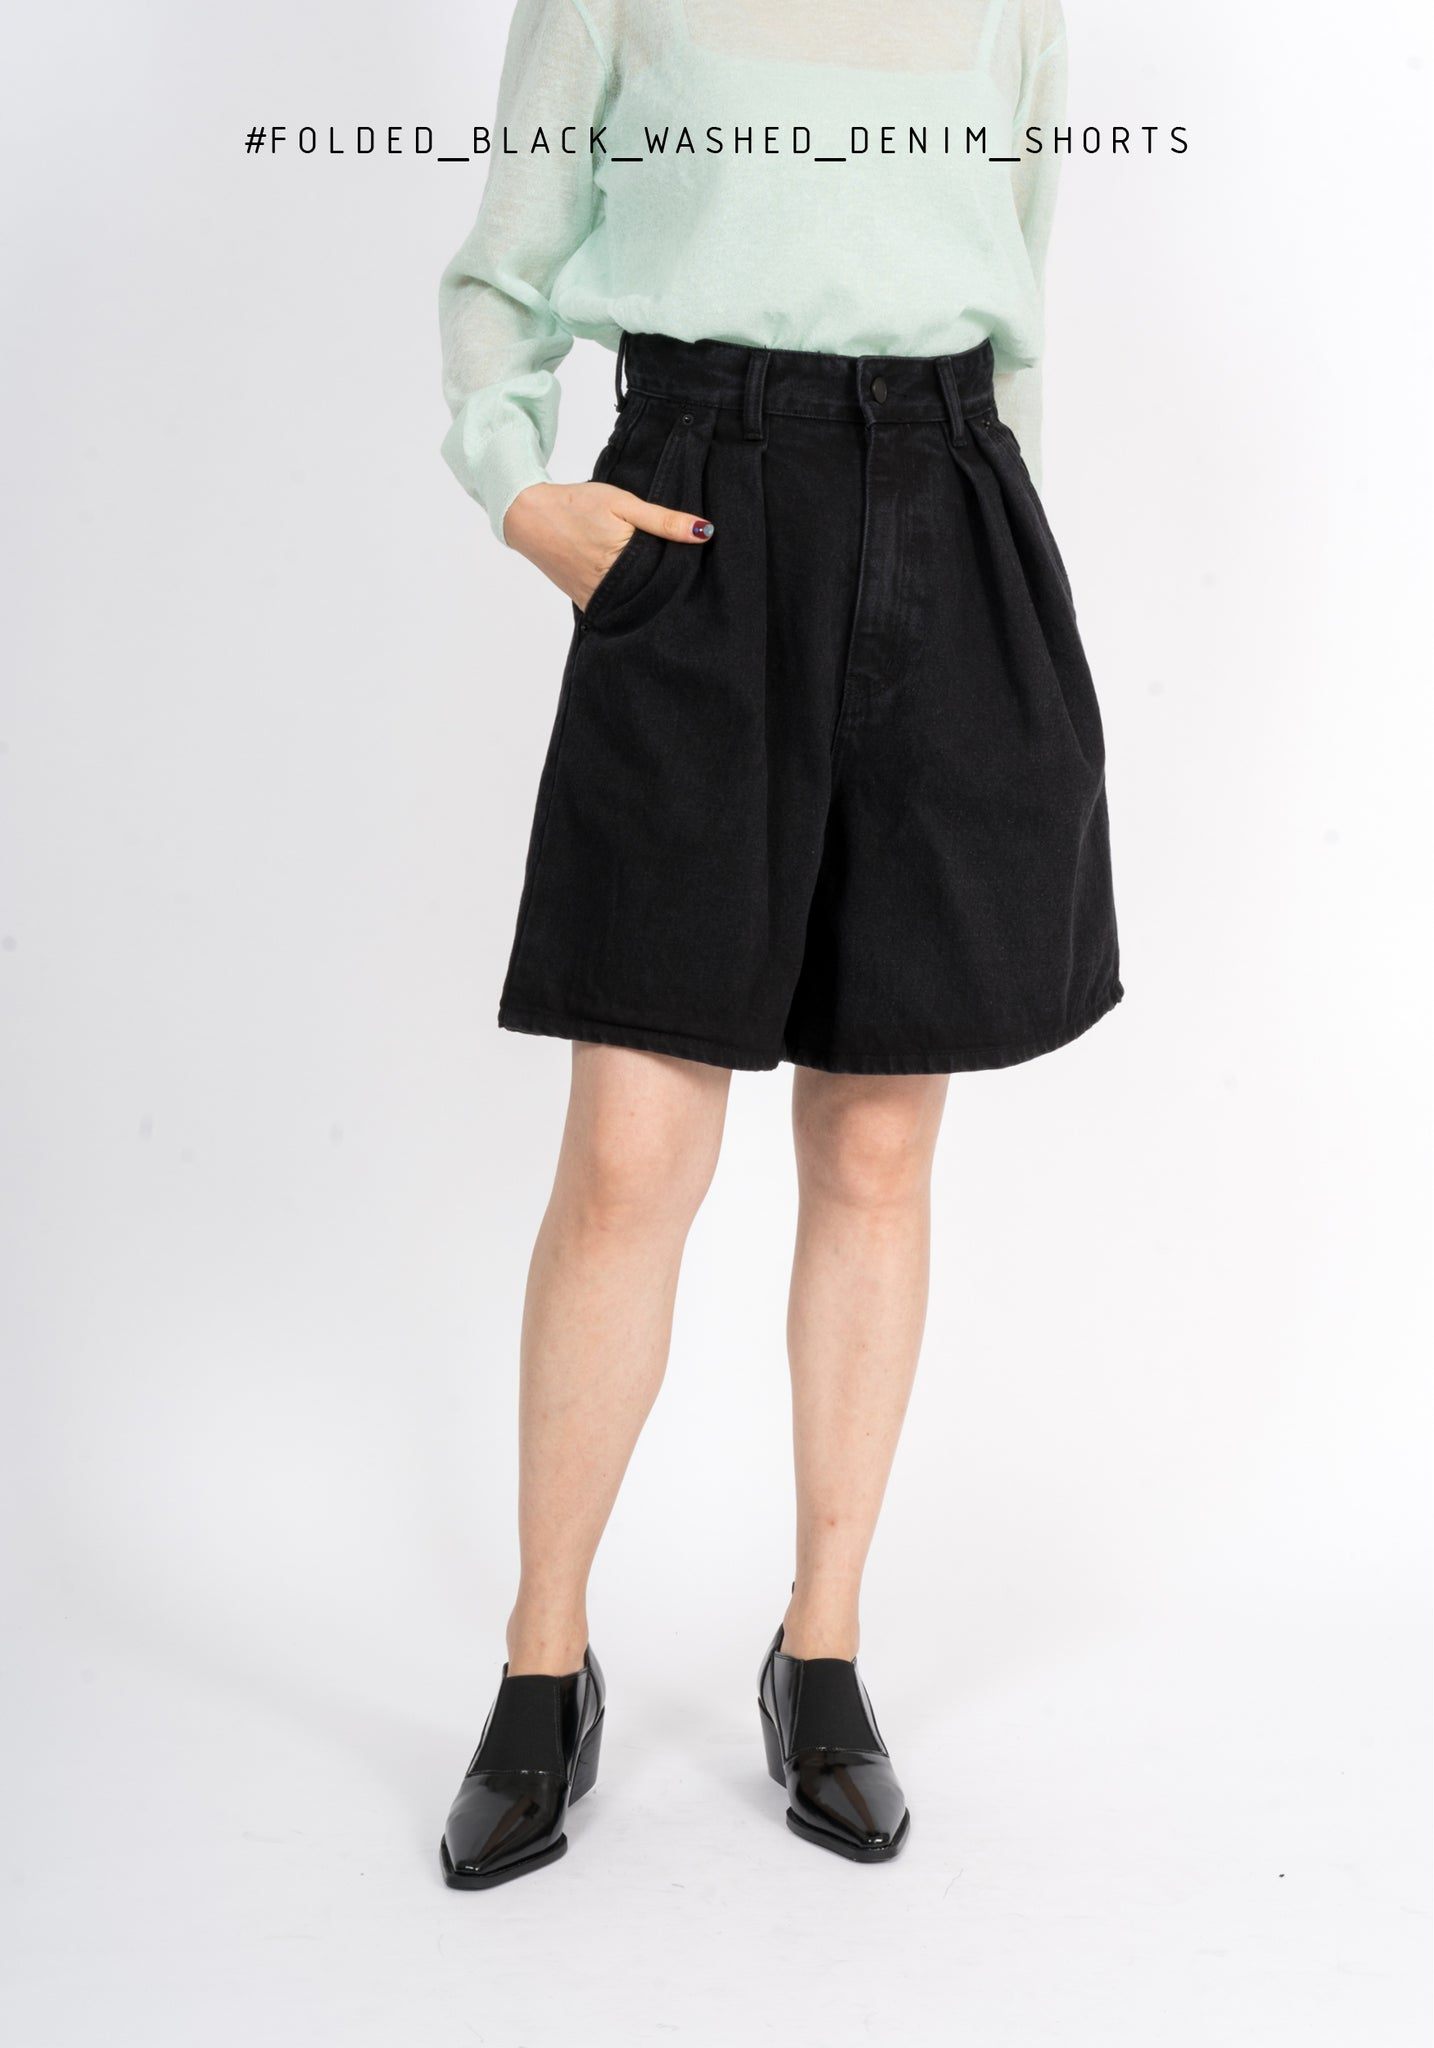 Folded Black Washed Denim Shorts - whoami